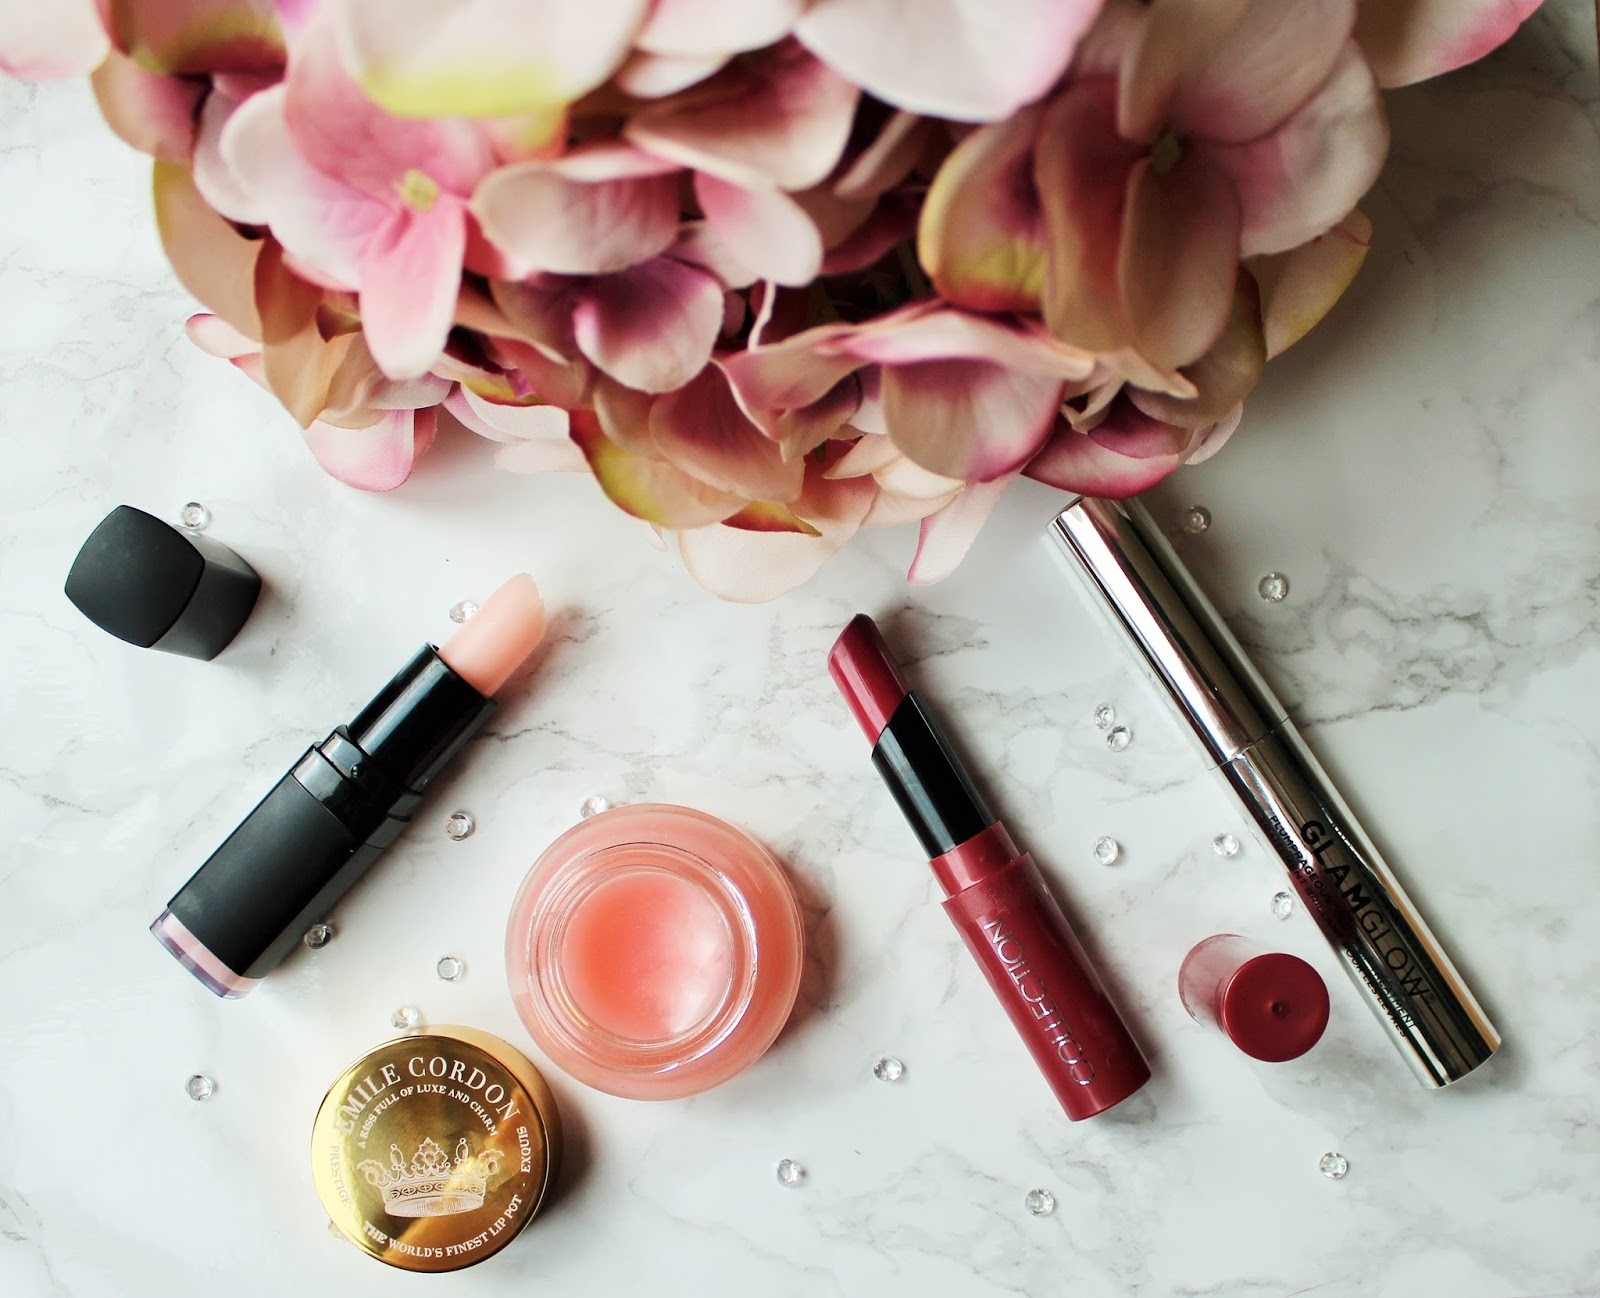 My Favourite Lip Care Products - 9